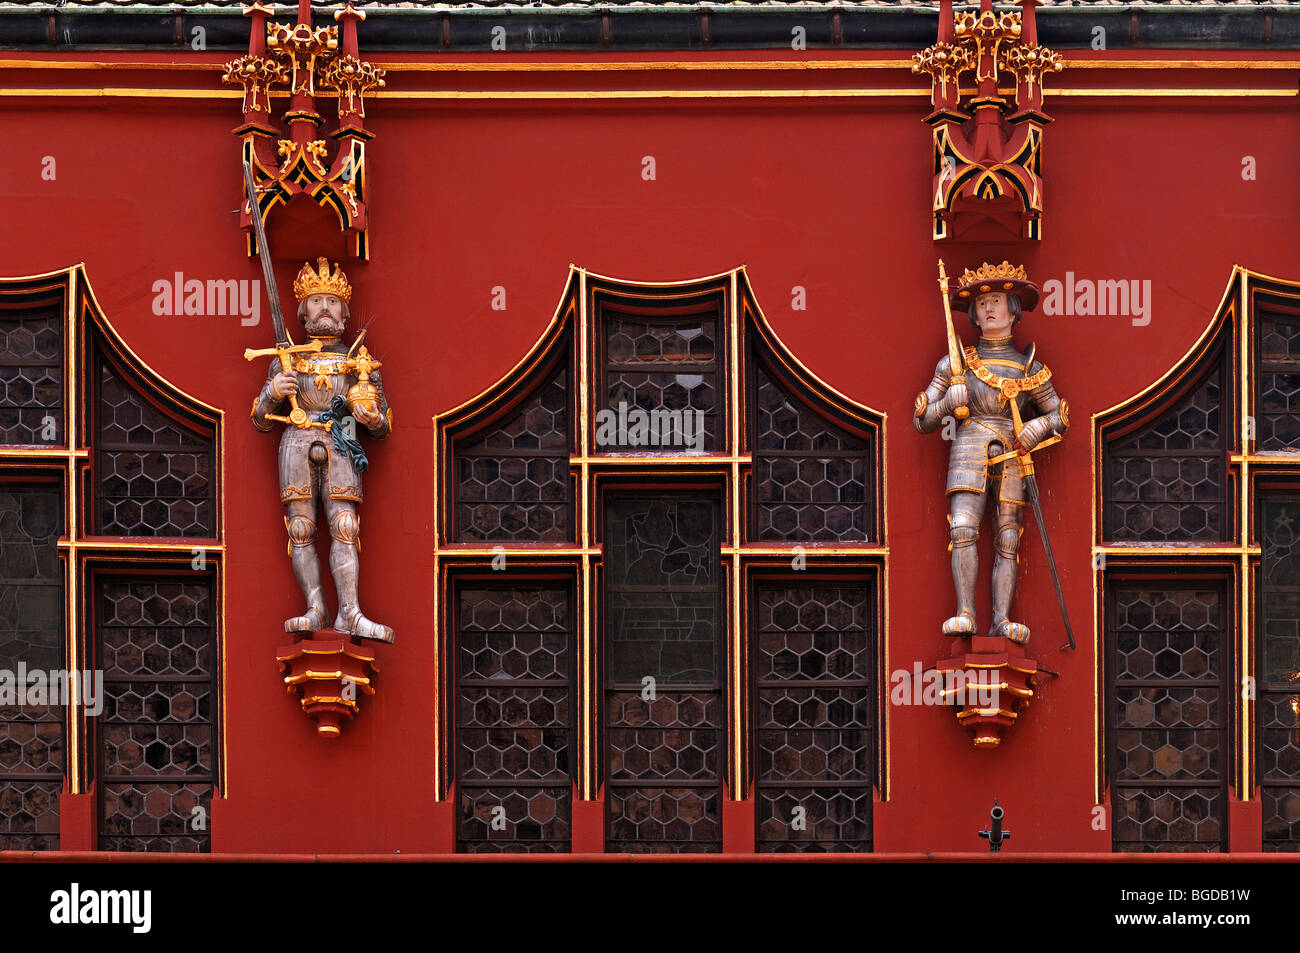 Figures of two Habsburg rulers on the Historisches Kaufhaus historical department store, 1520, 24 Muensterplatz - Stock Image